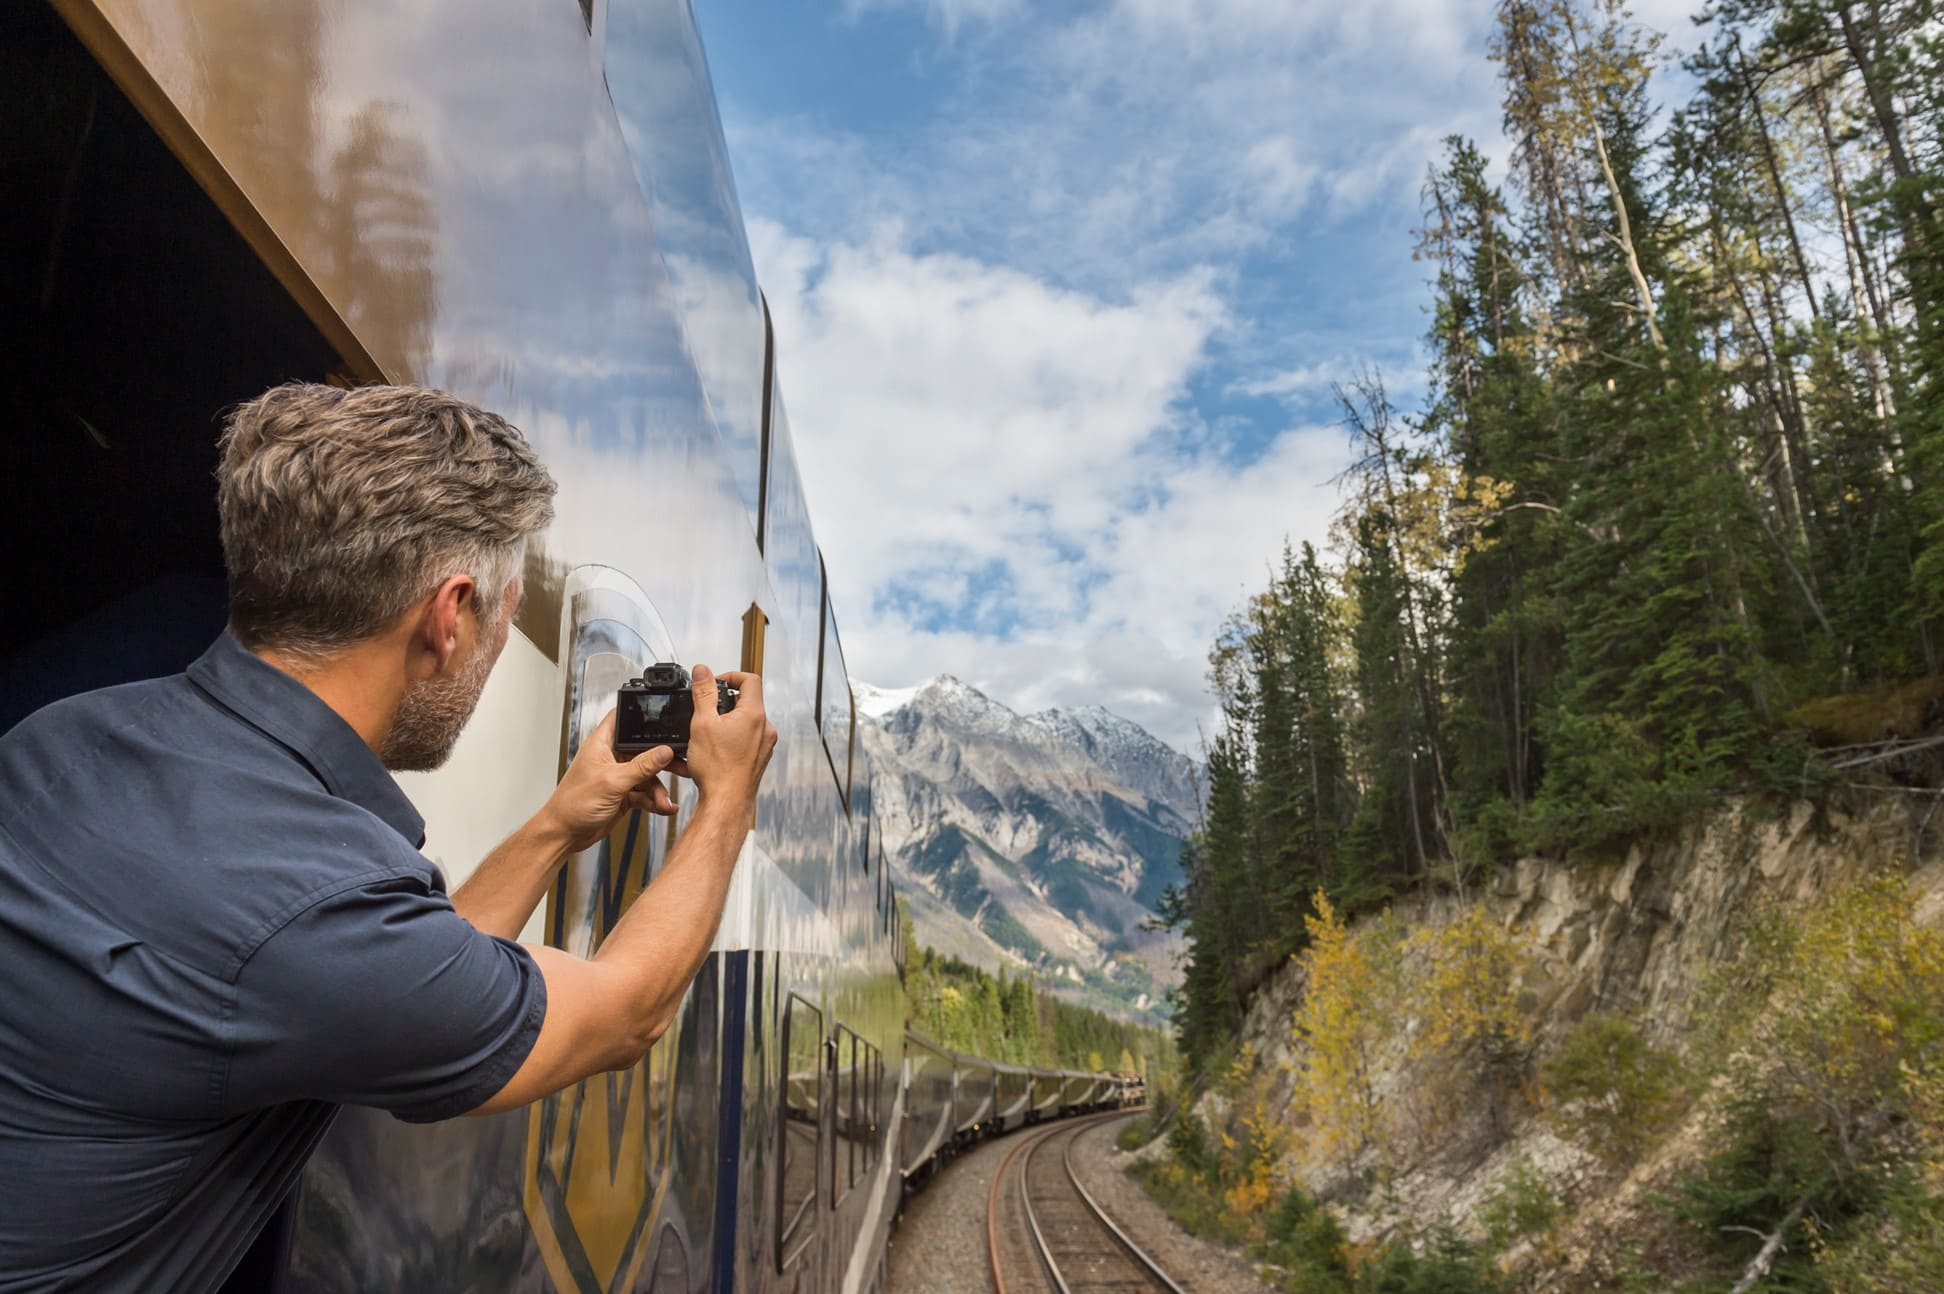 rocky mountaineer - Surprising (& Exciting!) News from the Travel Industry